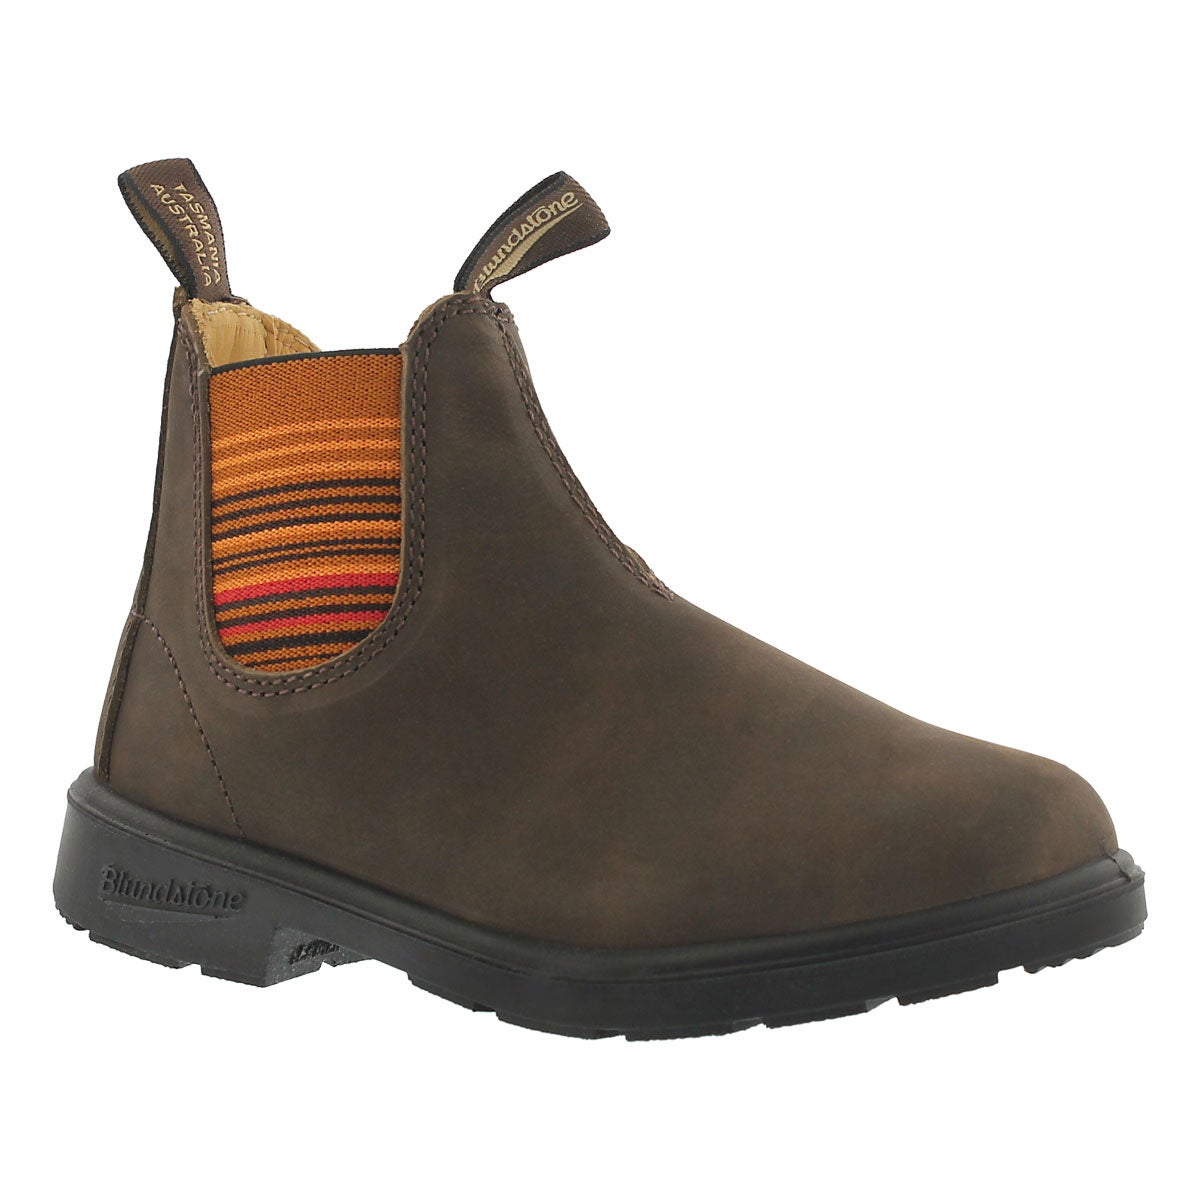 Kids' BLUNNIES brown twin gore boots